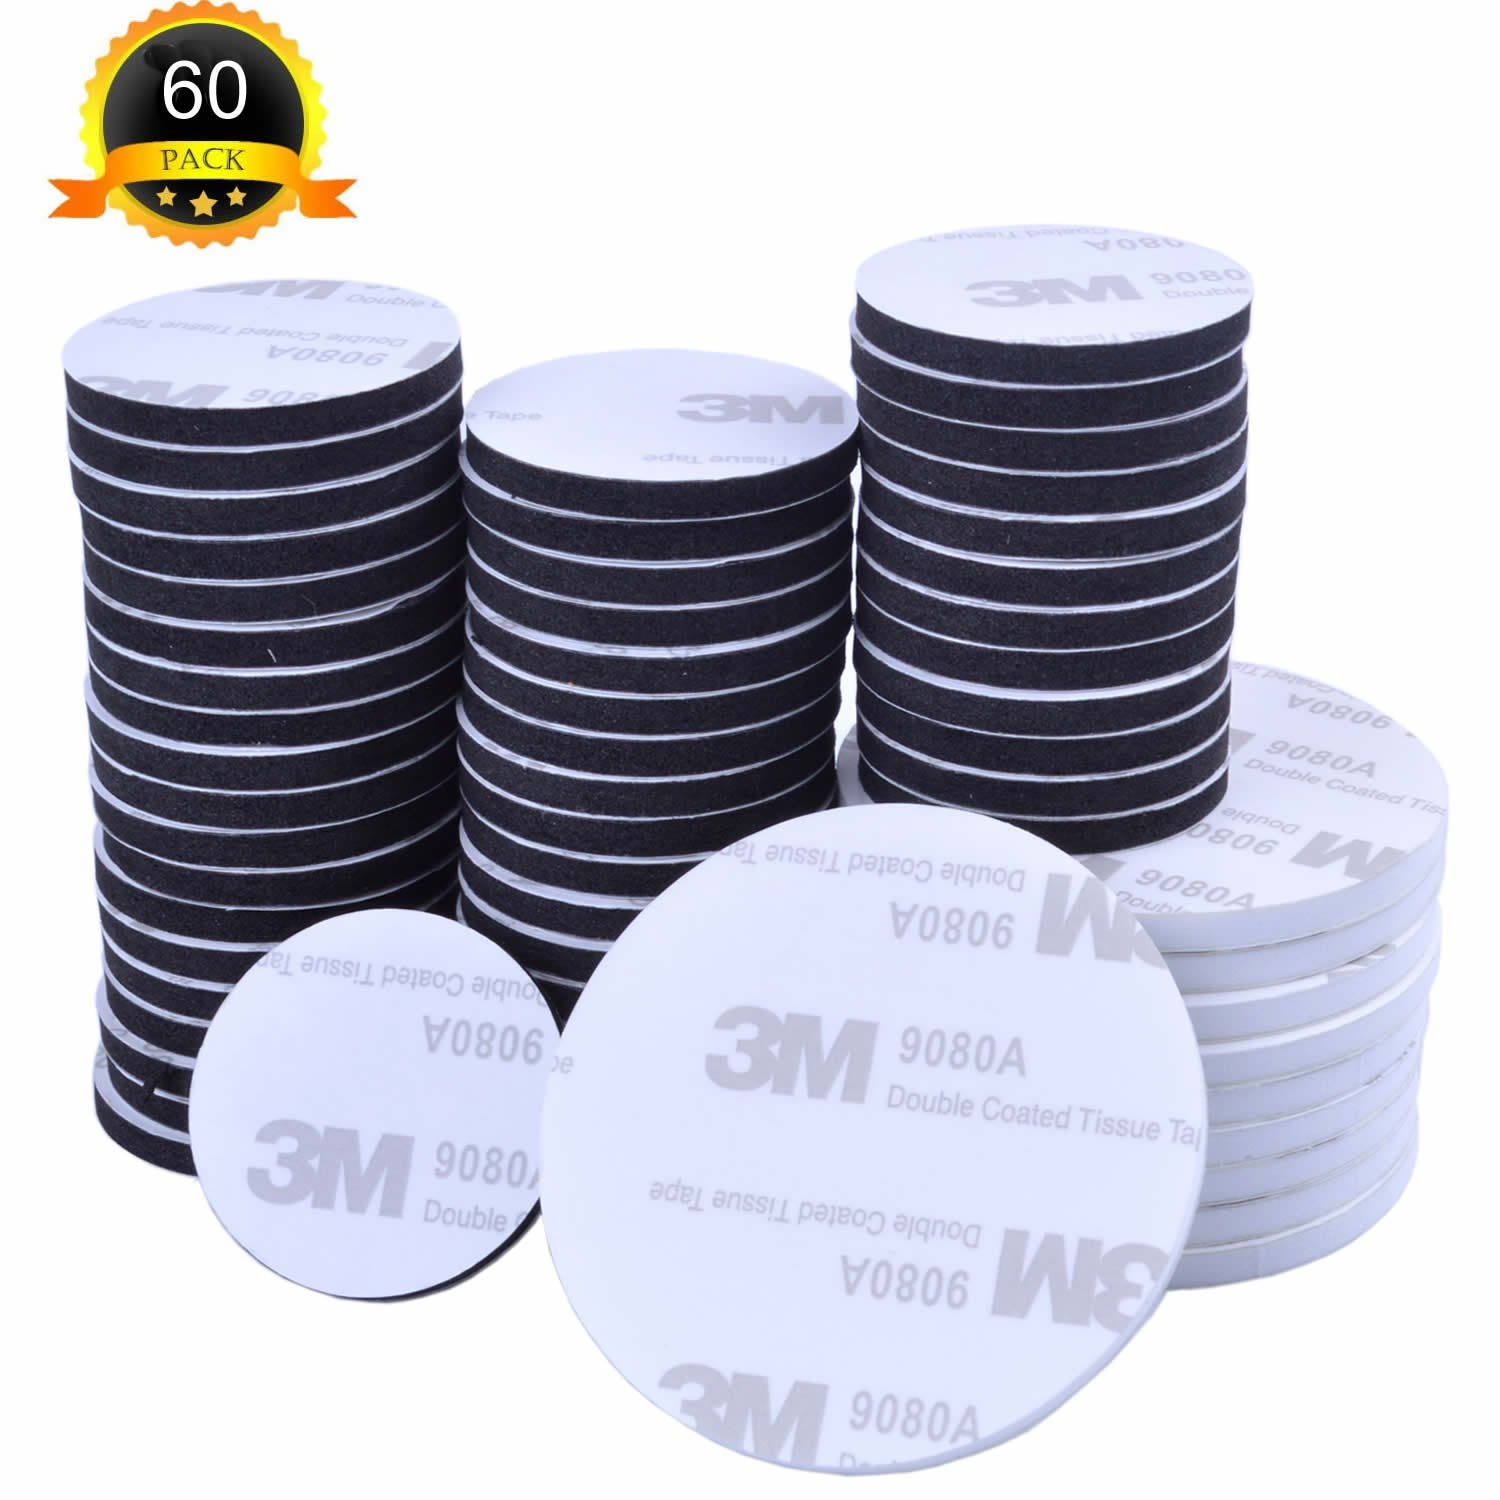 enhuton 60 Pcs Sticky Foam Tapes Double Sided Round Circles Pads Dia 30mm/50mm Black and White euhuton